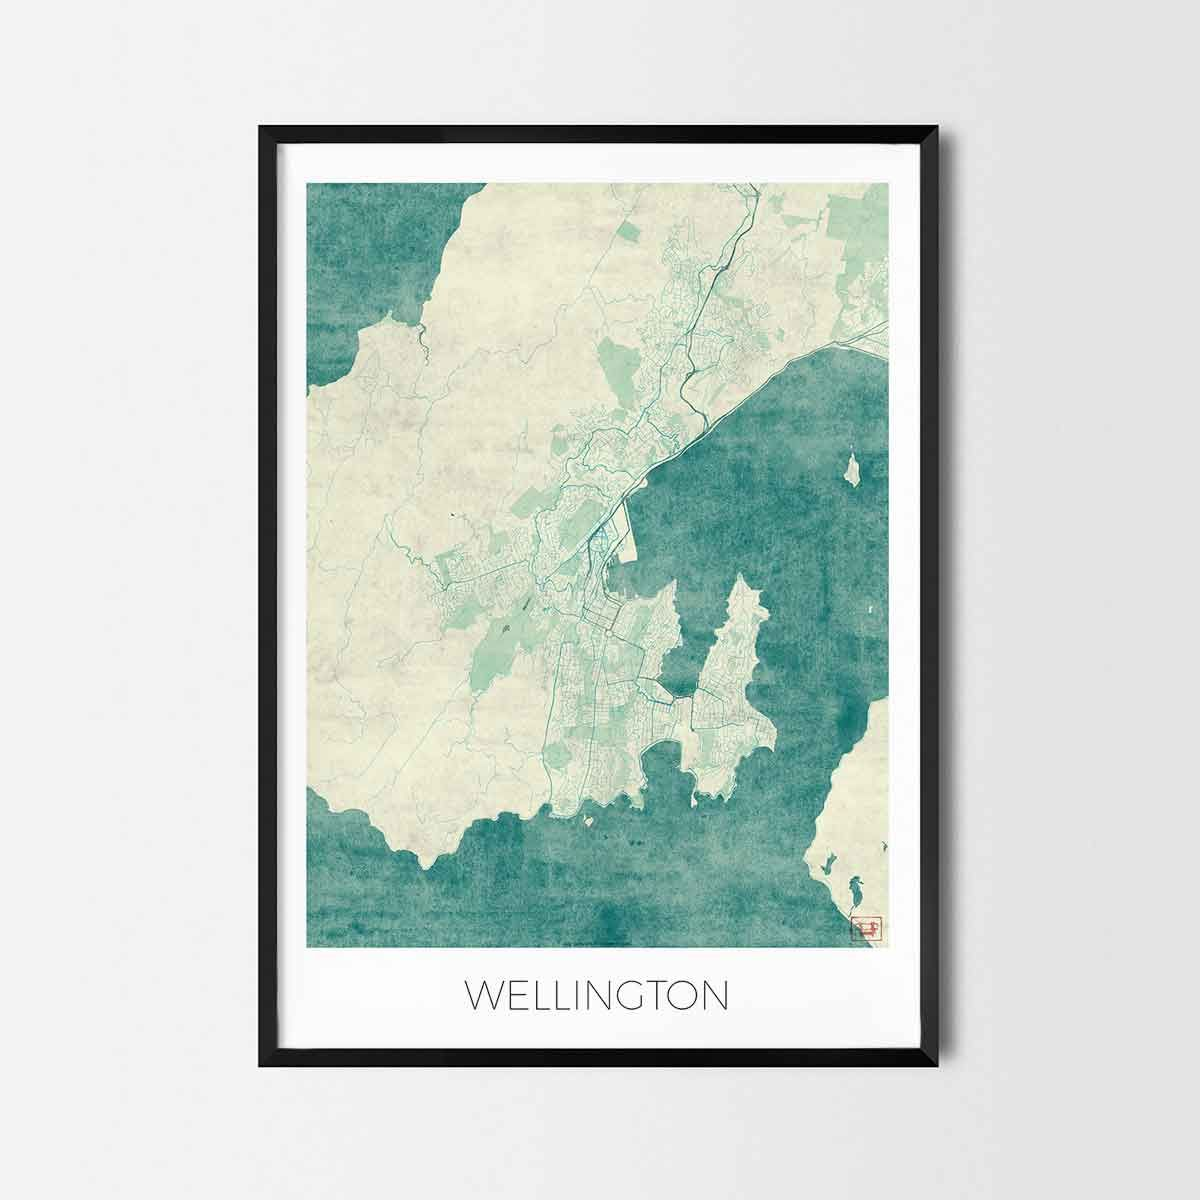 Wellington art posters city art map posters and prints art posters wellington art posters city art map posters and prints gumiabroncs Choice Image